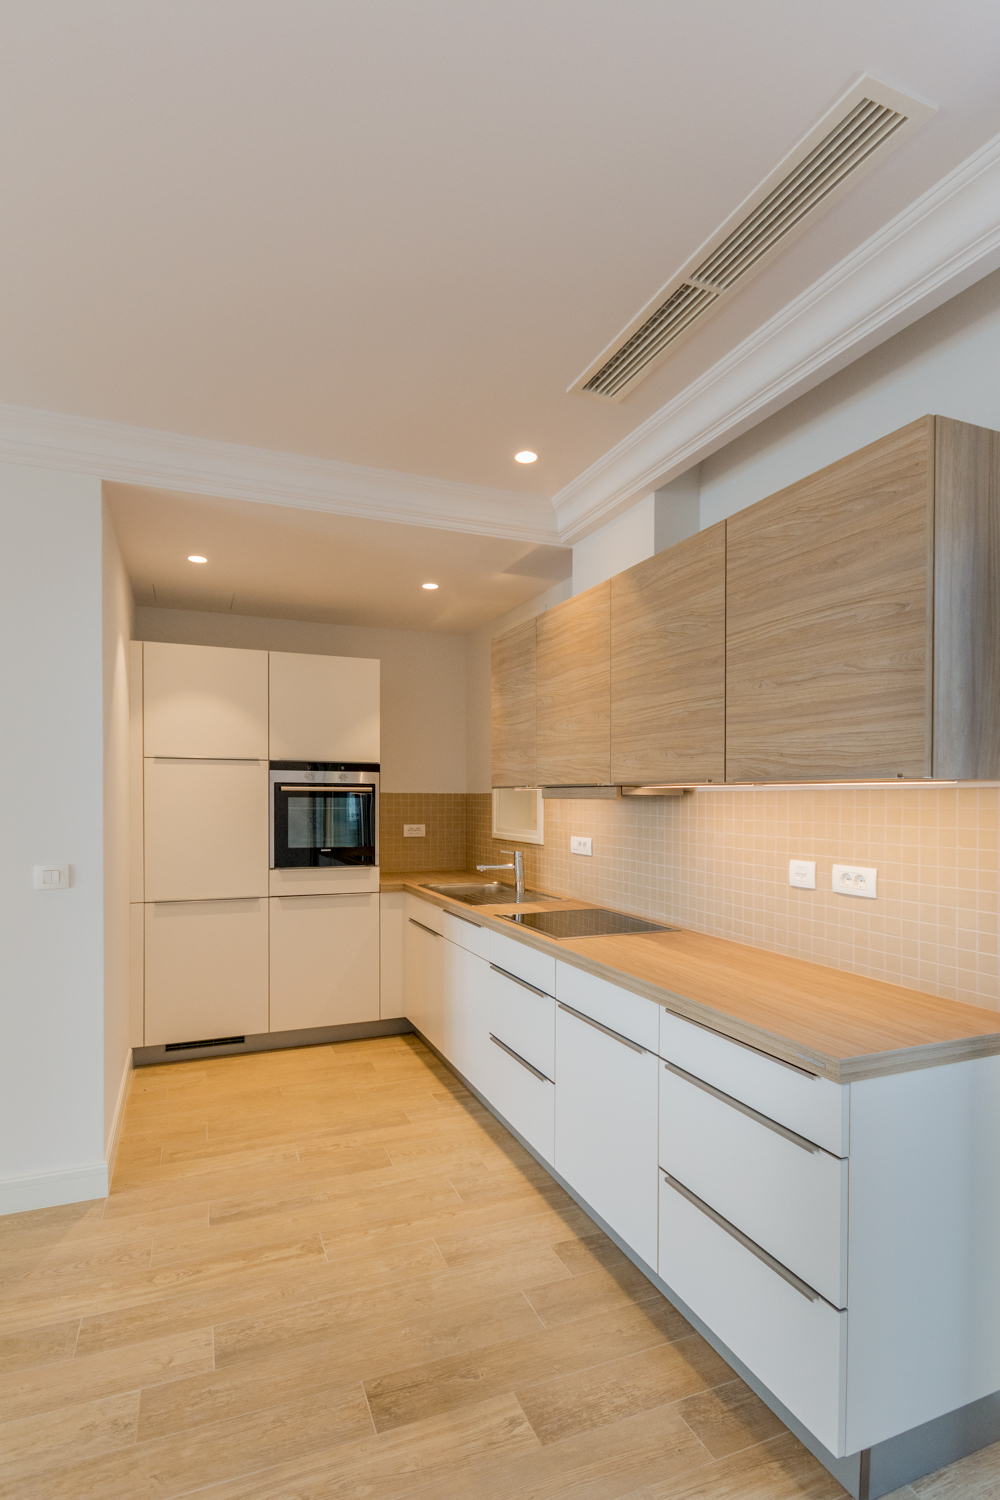 Two-bedroom apartment in Magnolia residence, Lustica Bay